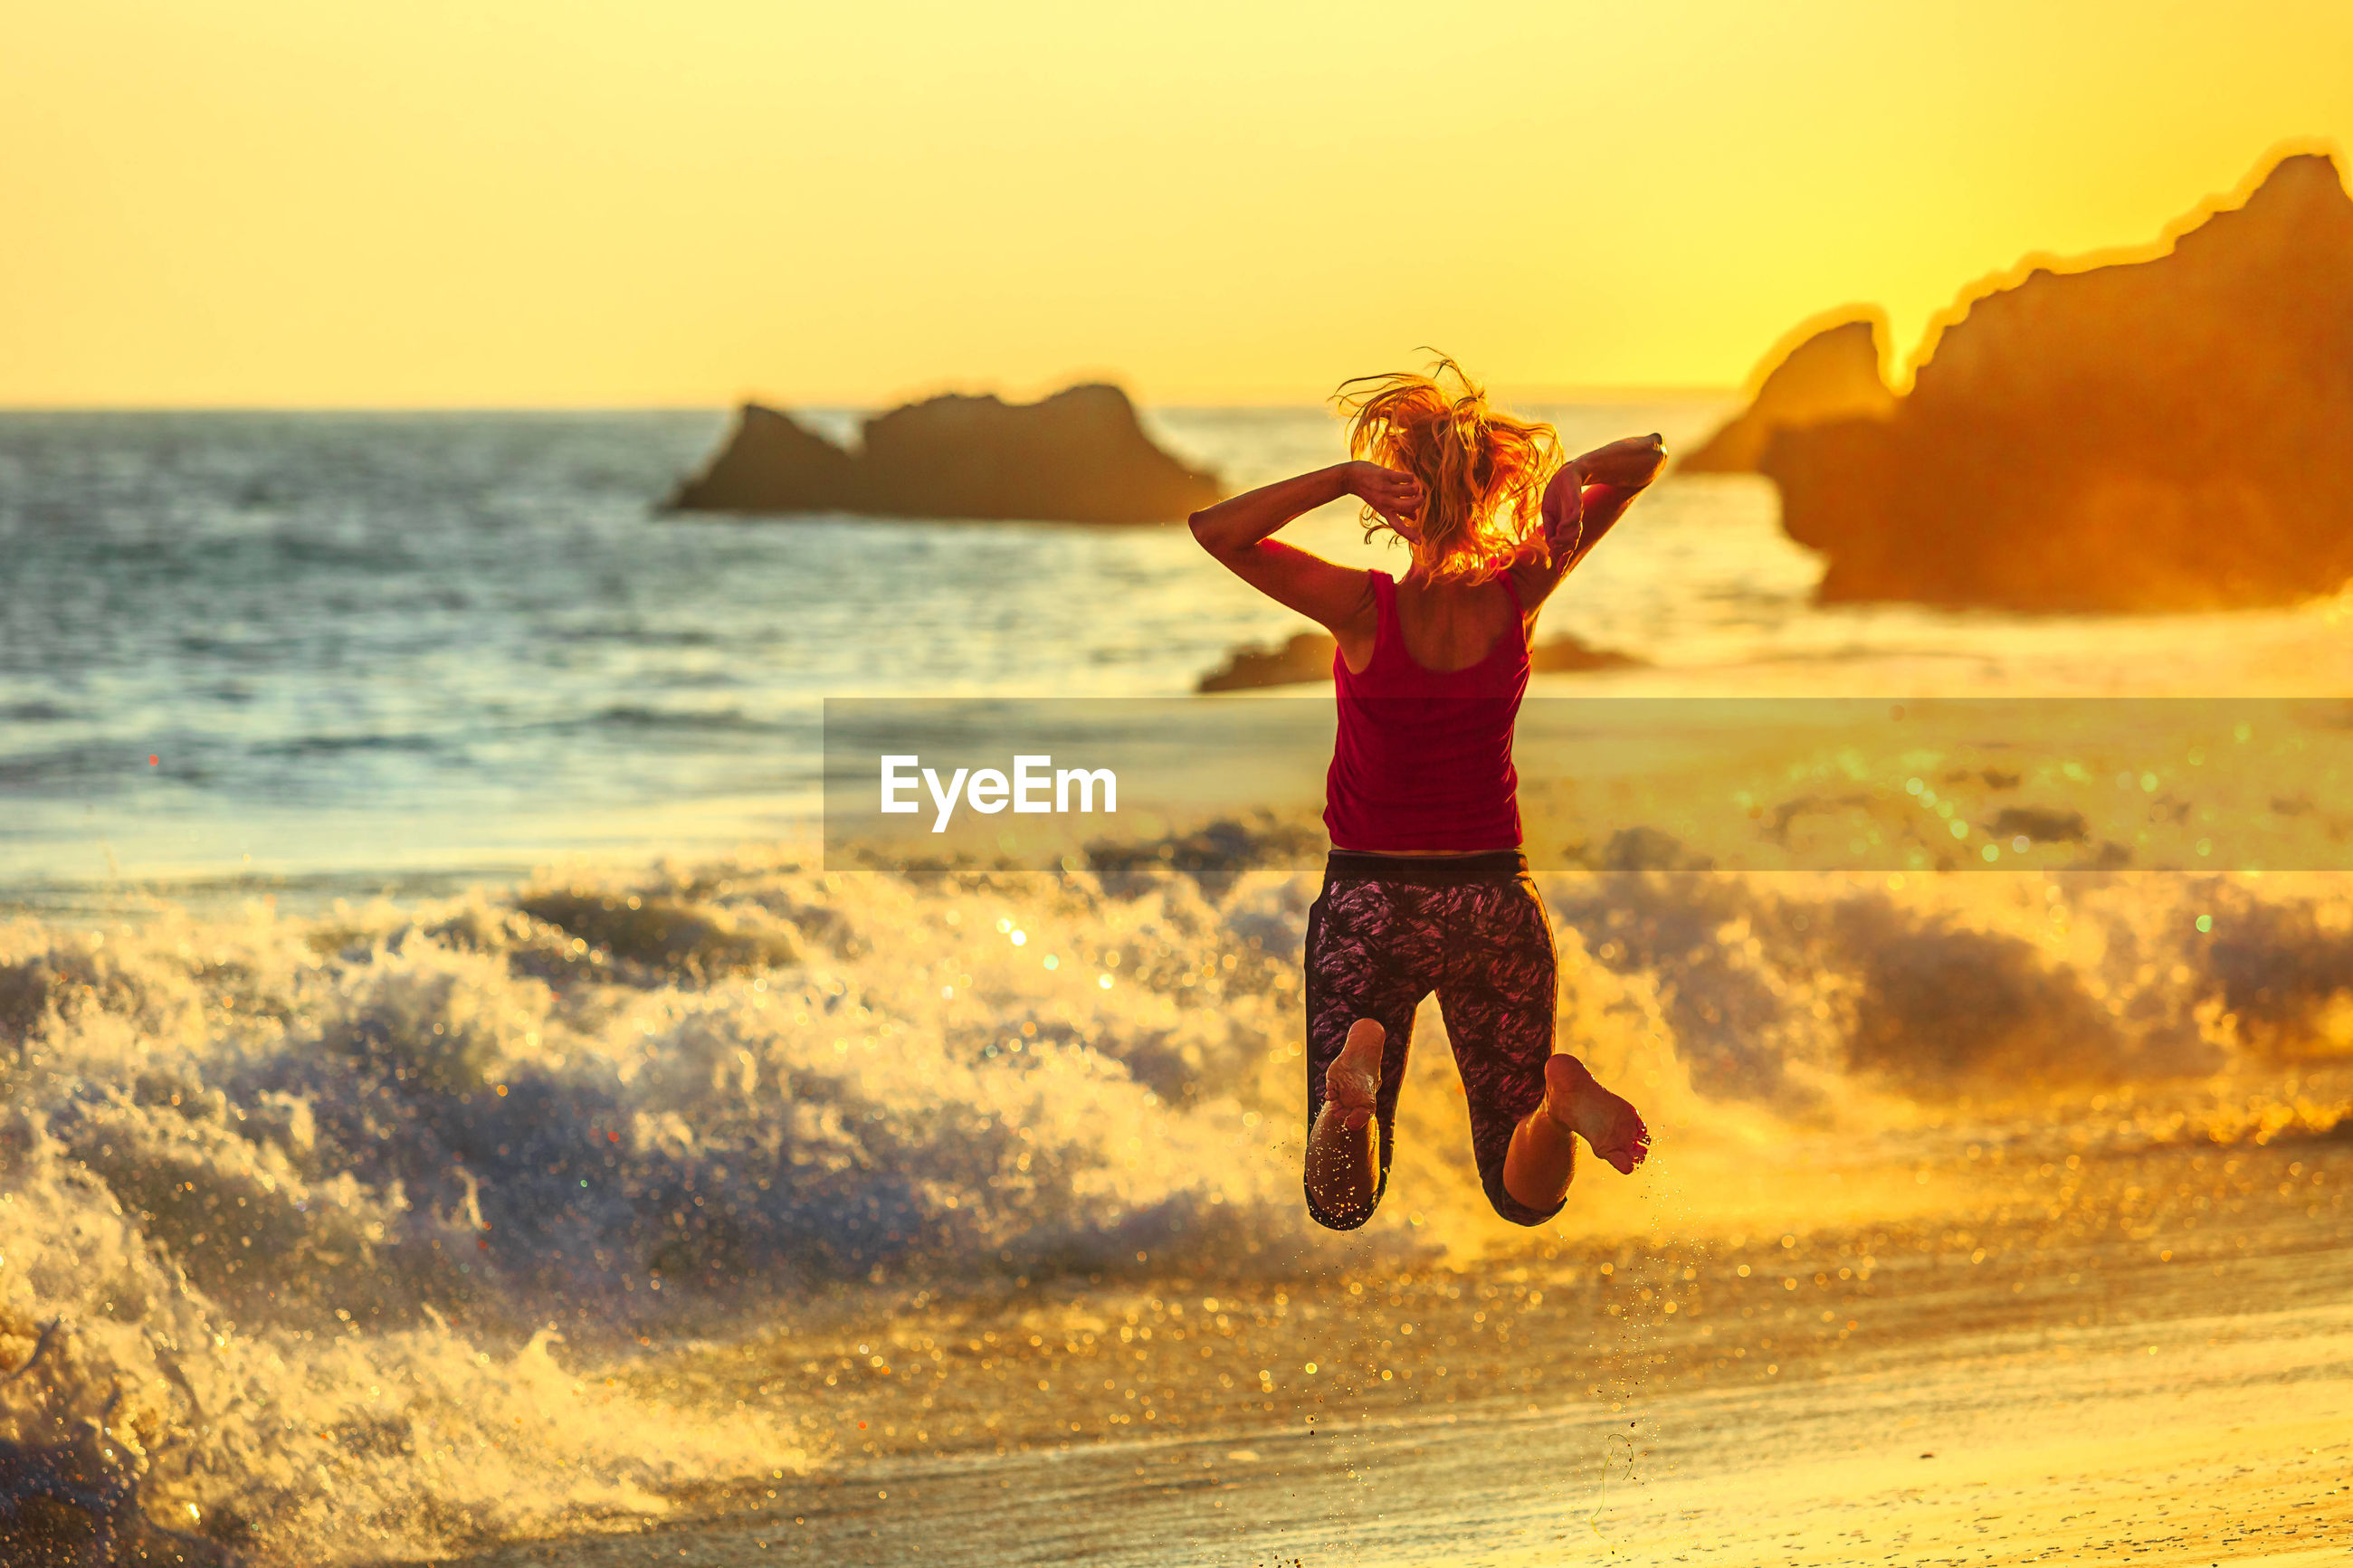 Rear view of mature woman jumping at beach against sky during sunset